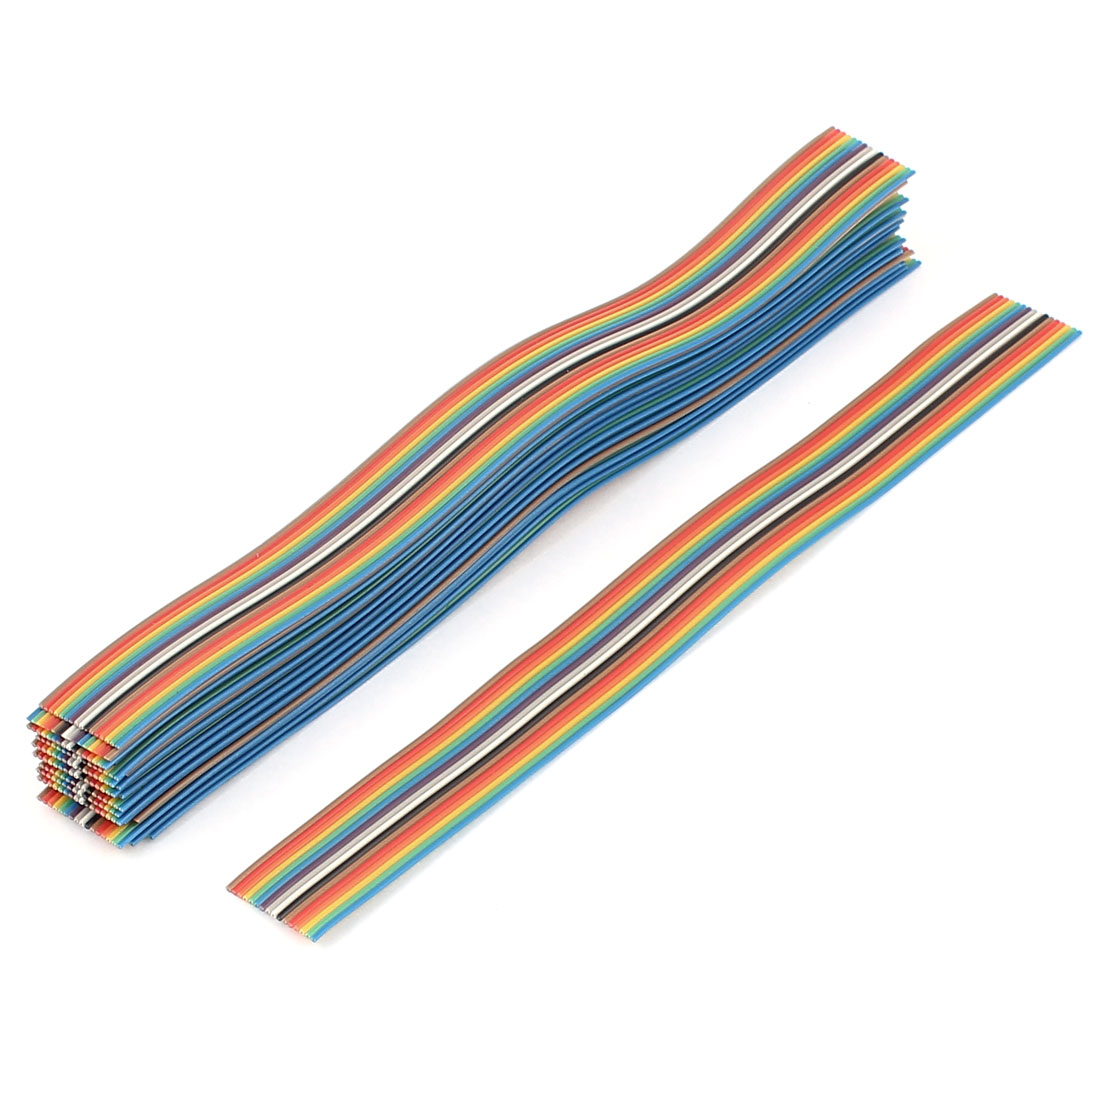 20 Pcs 200mm Long 16-Pin Rainbow Color Flat Ribbon Cable IDC Wire